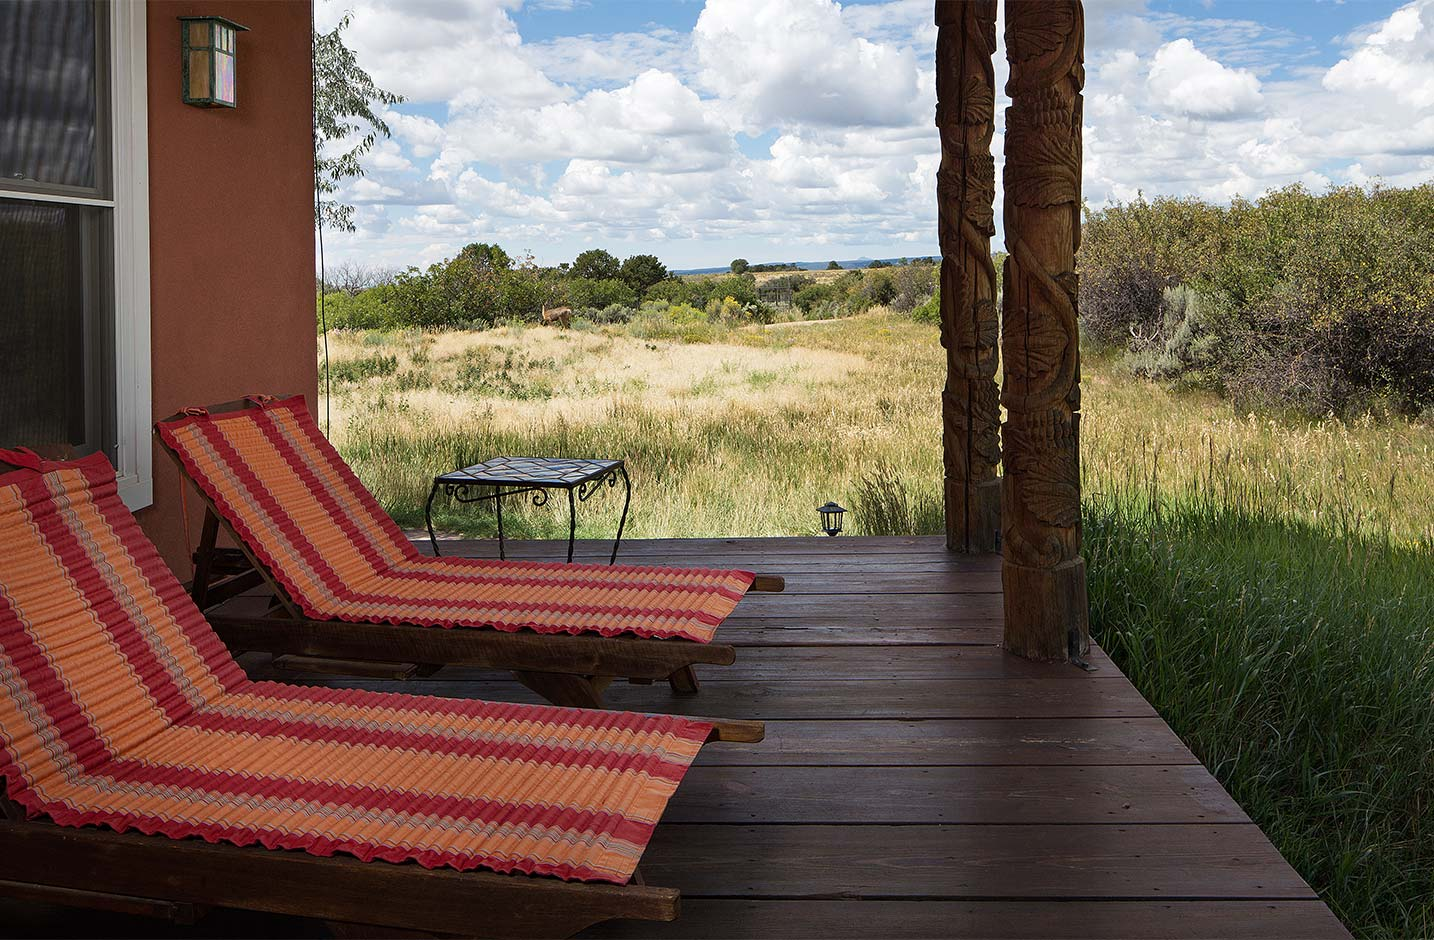 Wooden patio with two reclined chairs